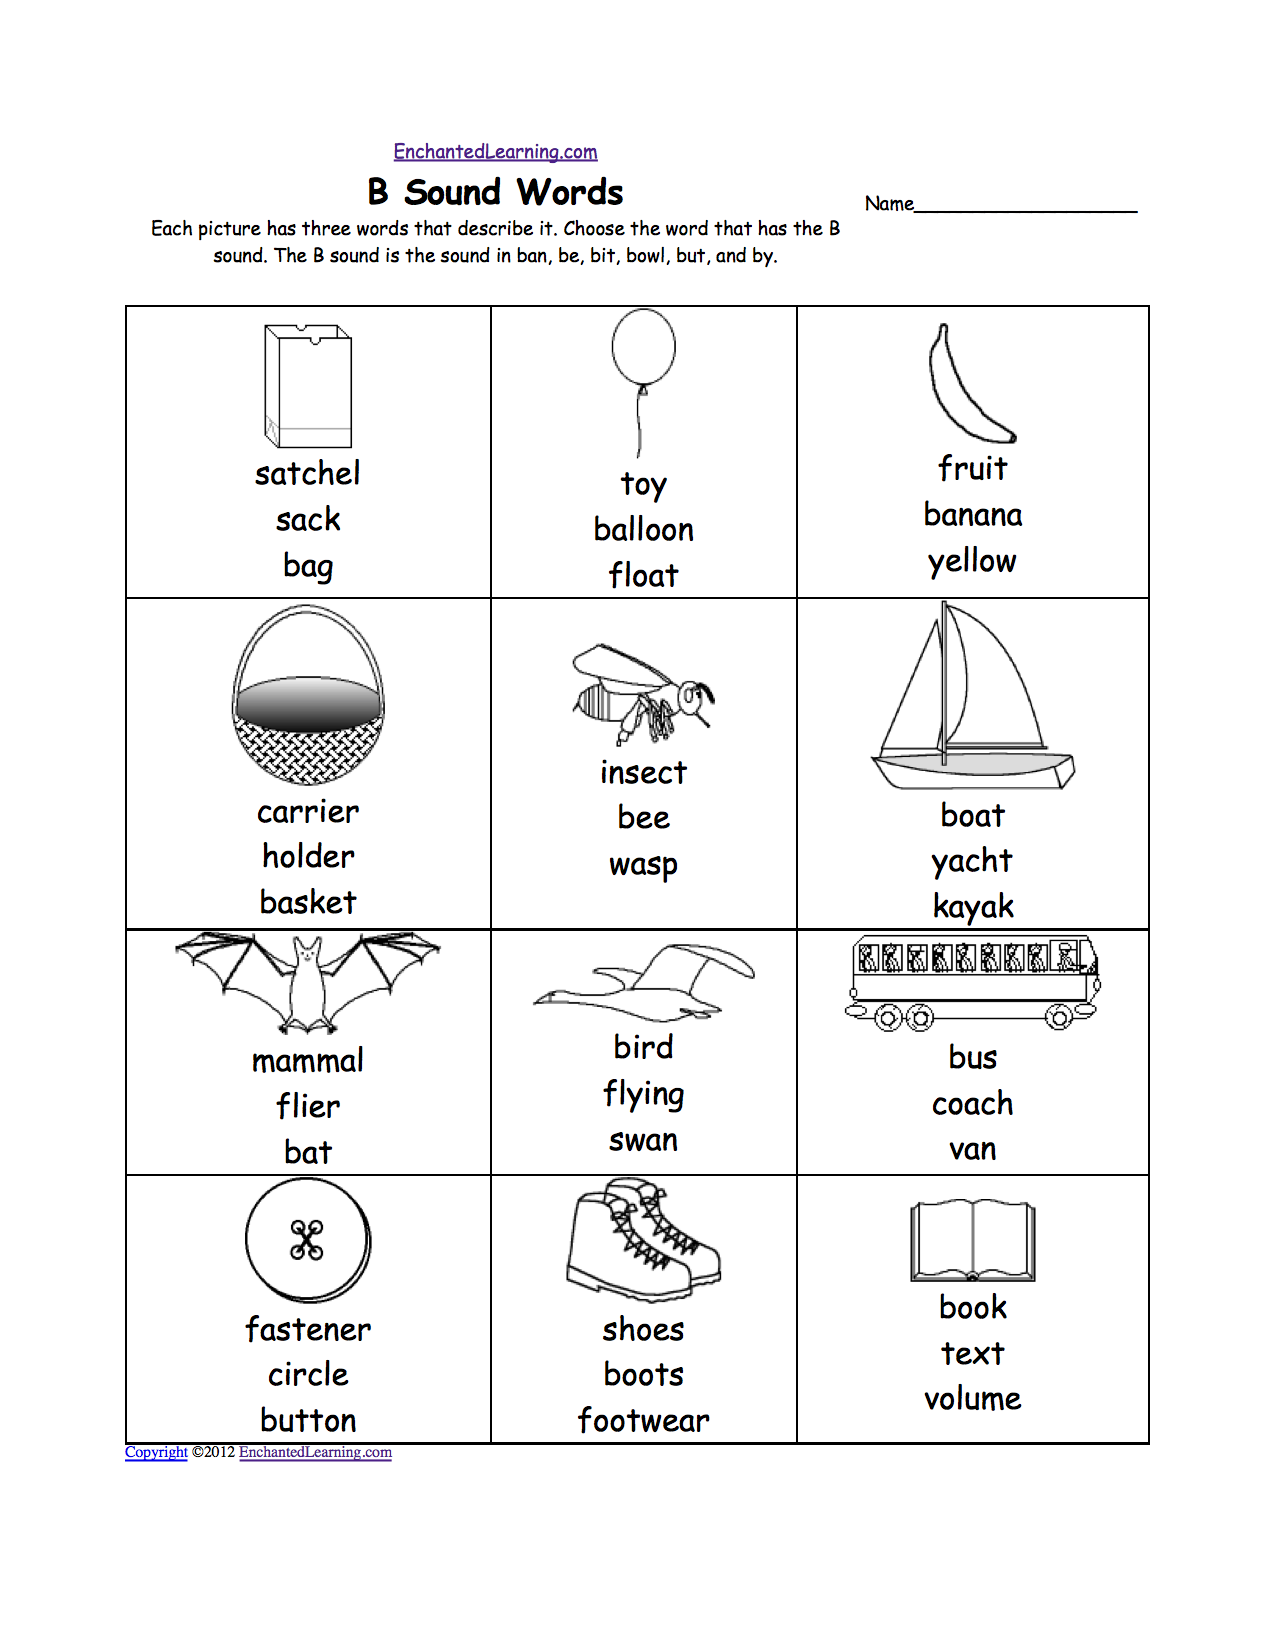 Weirdmailus  Winning Phonics Worksheets Multiple Choice Worksheets To Print  With Hot Quotbquot Sound Phonics Worksheet Multiple Choice Each Picture Has Three Words That Describe It Choose The Word That Has A Quotbquot Sound The Quotbquot Sound Is The Sound  With Astonishing  Grade Division Worksheets Also Matching Pictures Worksheets In Addition Reading Homework Worksheets And Periodic Trends Worksheets As Well As How Full Is Your Bucket Worksheet Additionally Subtraction With Regrouping Free Worksheets From Enchantedlearningcom With Weirdmailus  Hot Phonics Worksheets Multiple Choice Worksheets To Print  With Astonishing Quotbquot Sound Phonics Worksheet Multiple Choice Each Picture Has Three Words That Describe It Choose The Word That Has A Quotbquot Sound The Quotbquot Sound Is The Sound  And Winning  Grade Division Worksheets Also Matching Pictures Worksheets In Addition Reading Homework Worksheets From Enchantedlearningcom